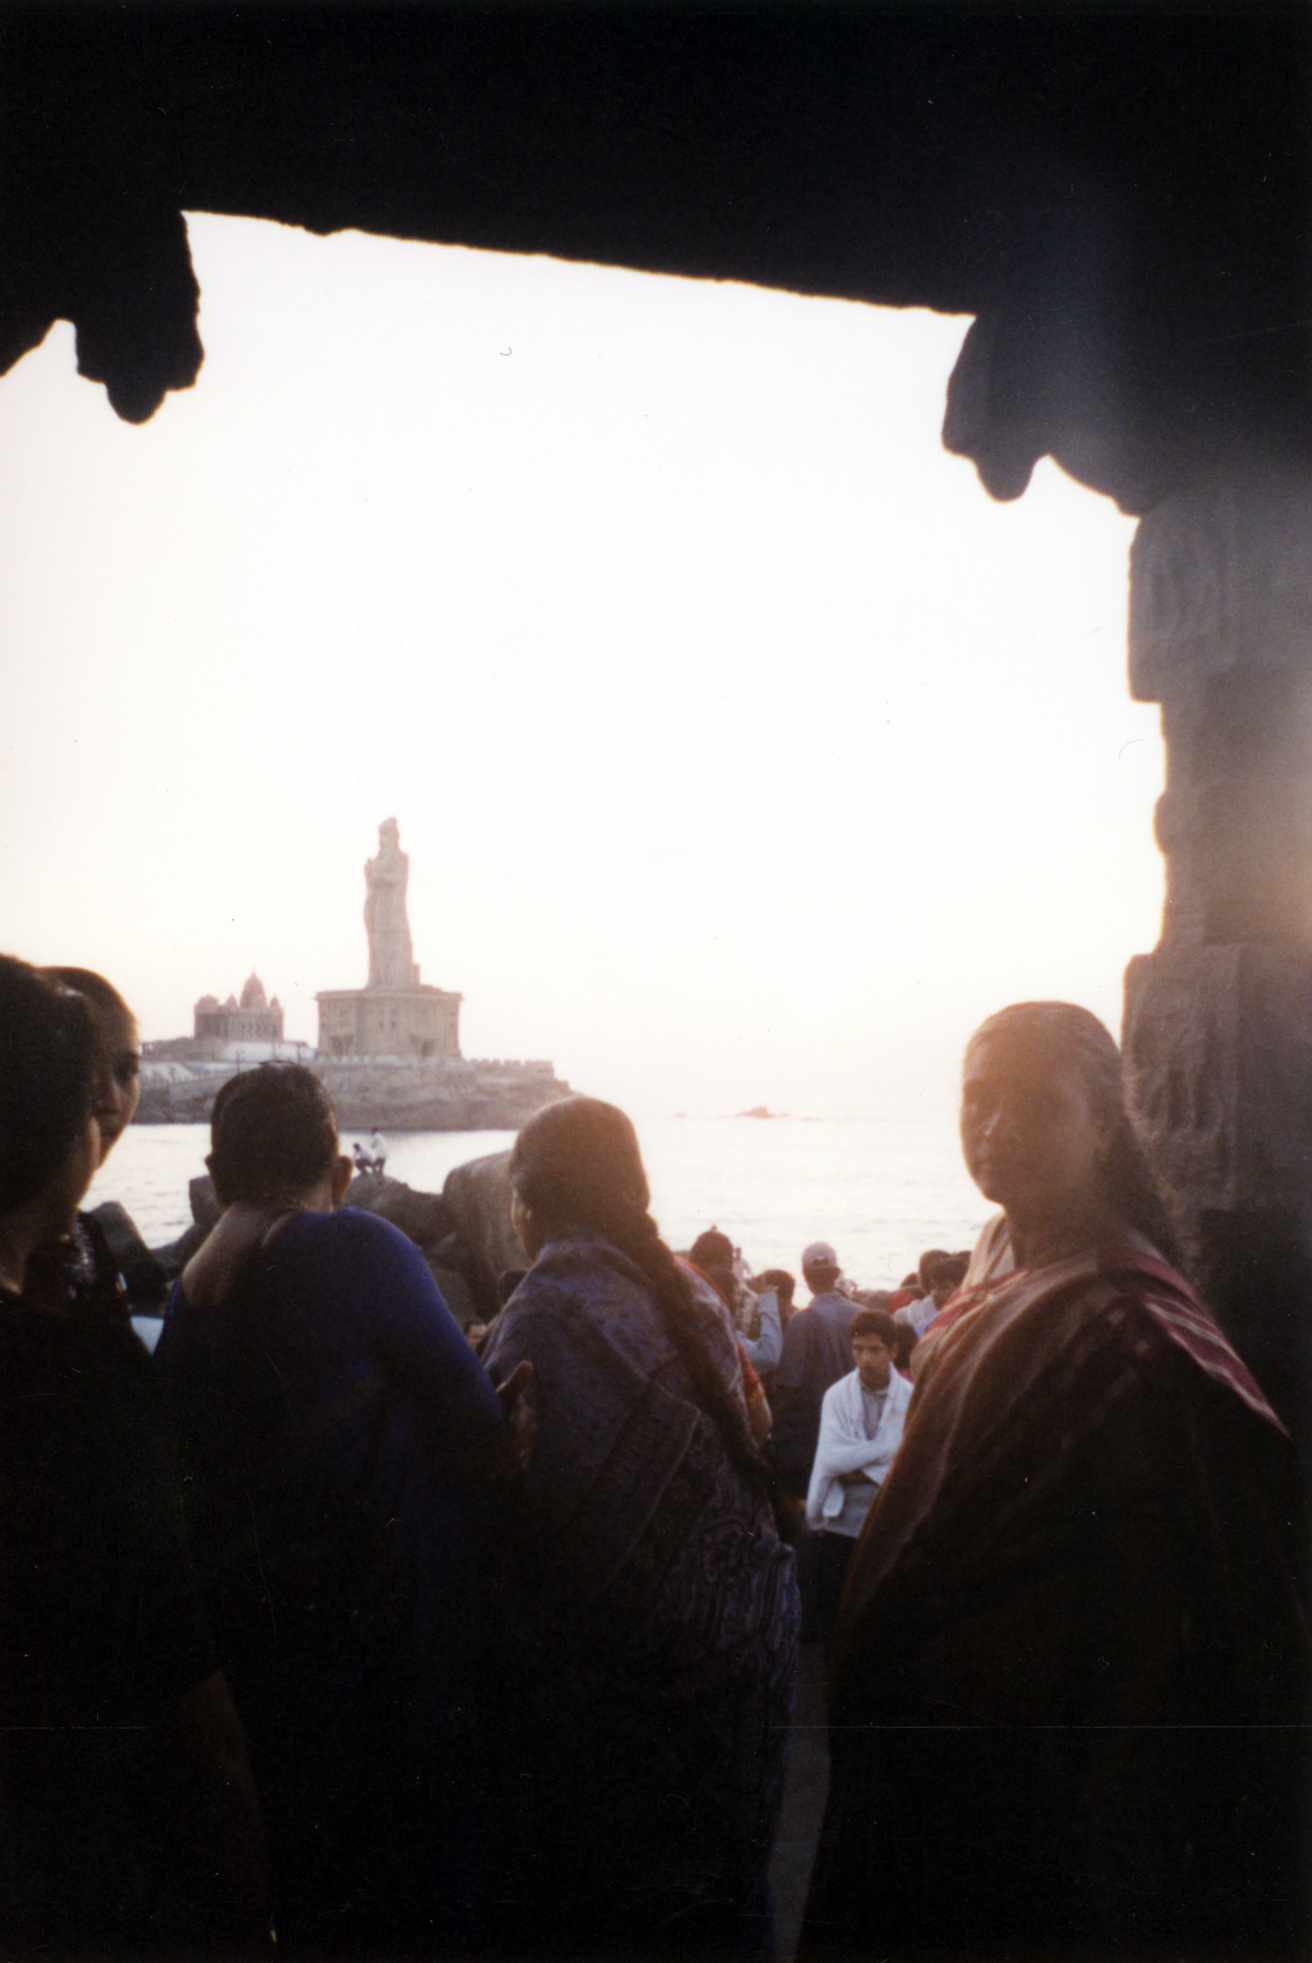 nature characters humanoids iuliana india woman ganges crowd front silhouette ganghes river statue